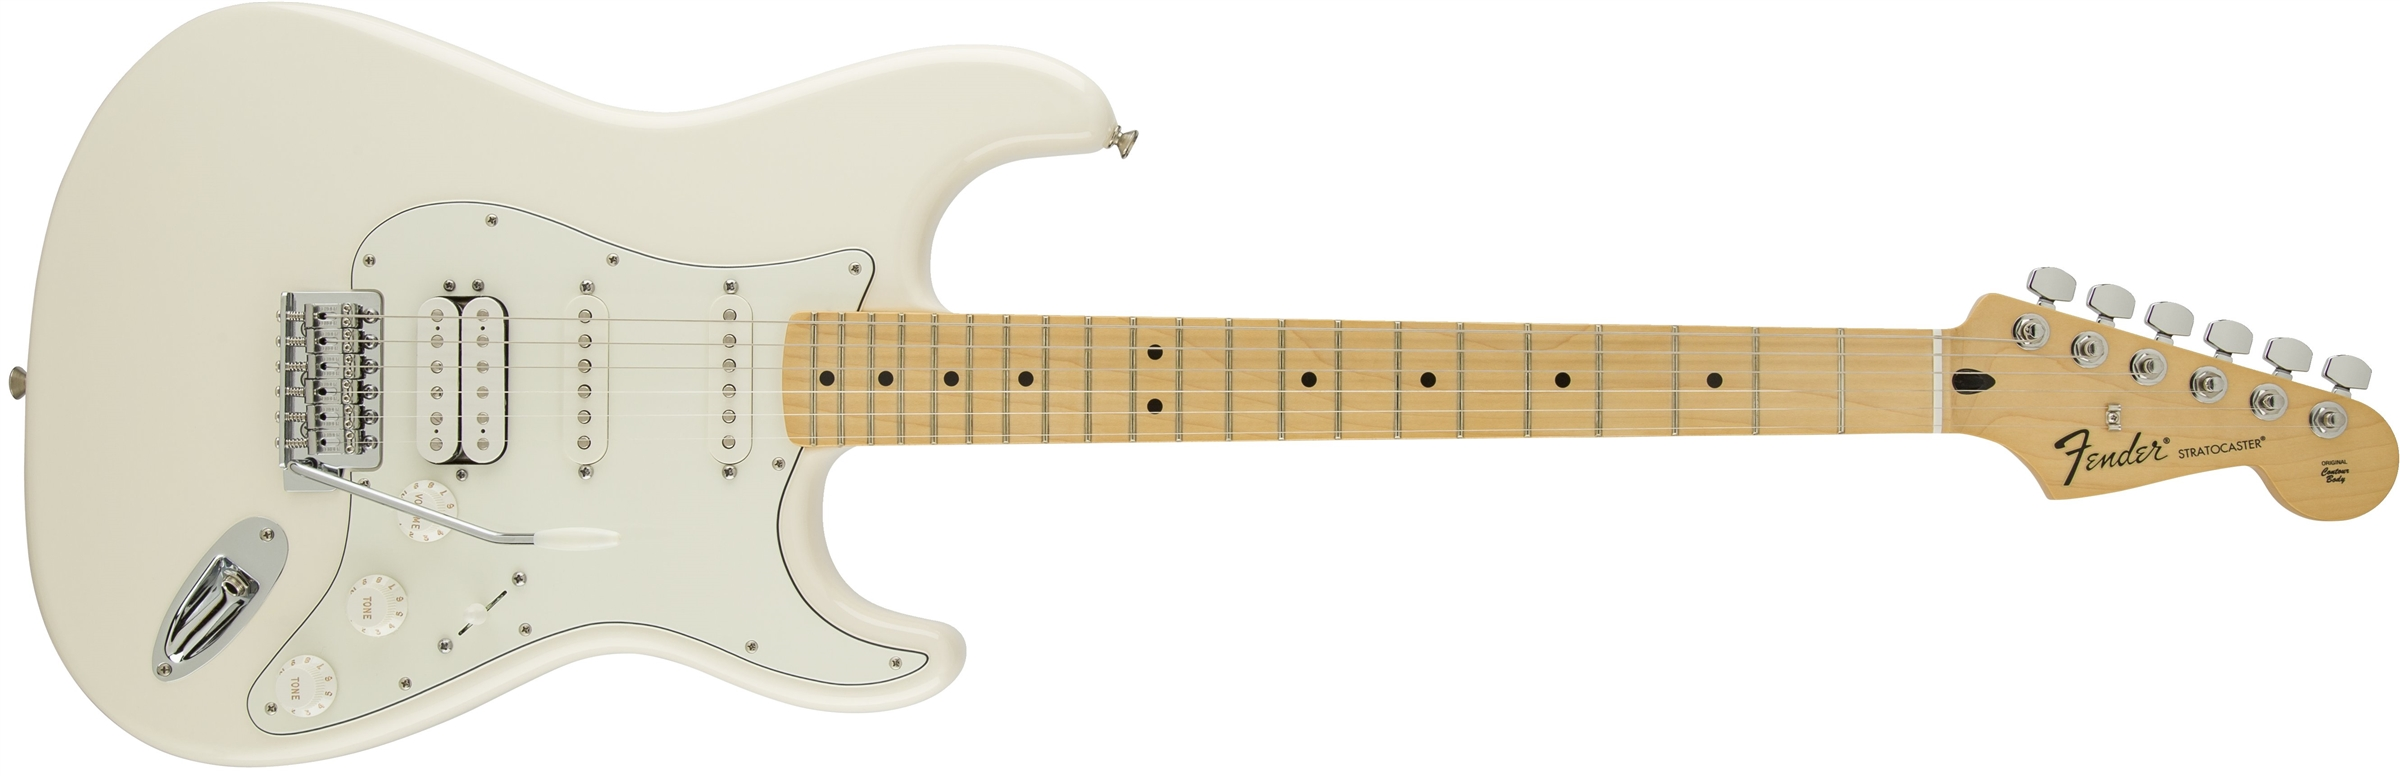 fender deluxe stratocaster electric guitar hss maple